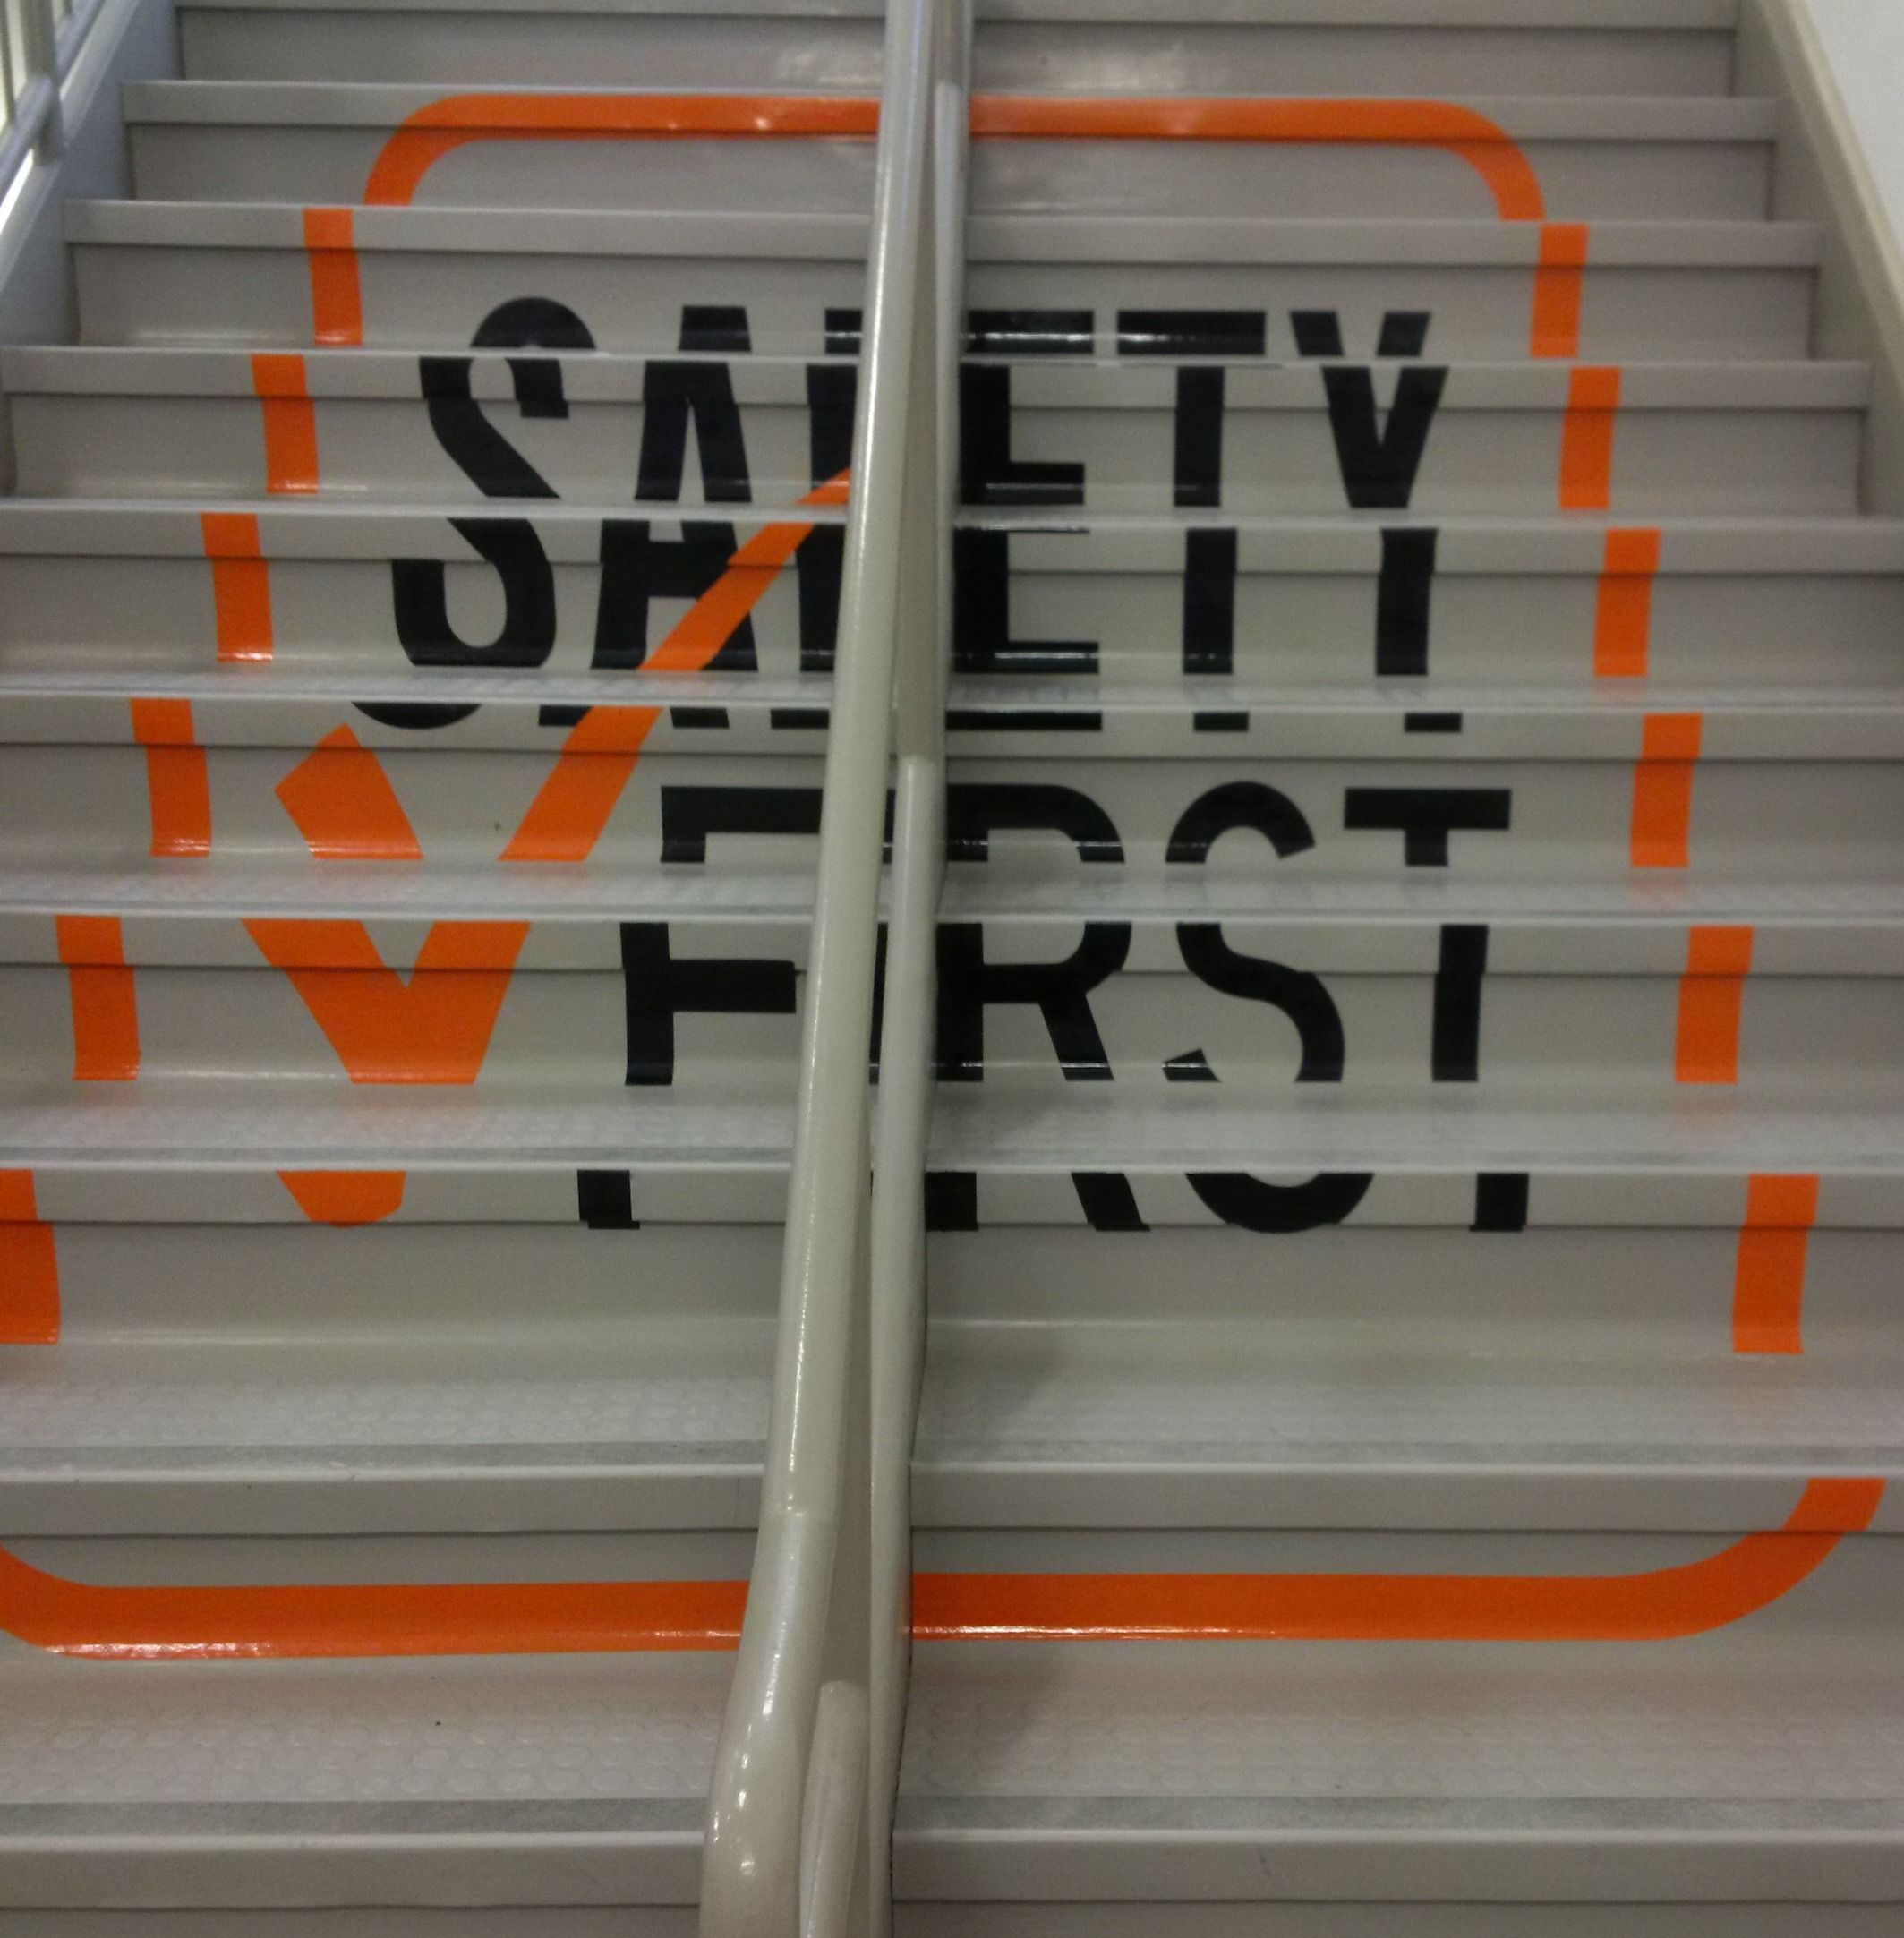 Hand-painted message on stairs at Darlington Nuclear Plant, 2018